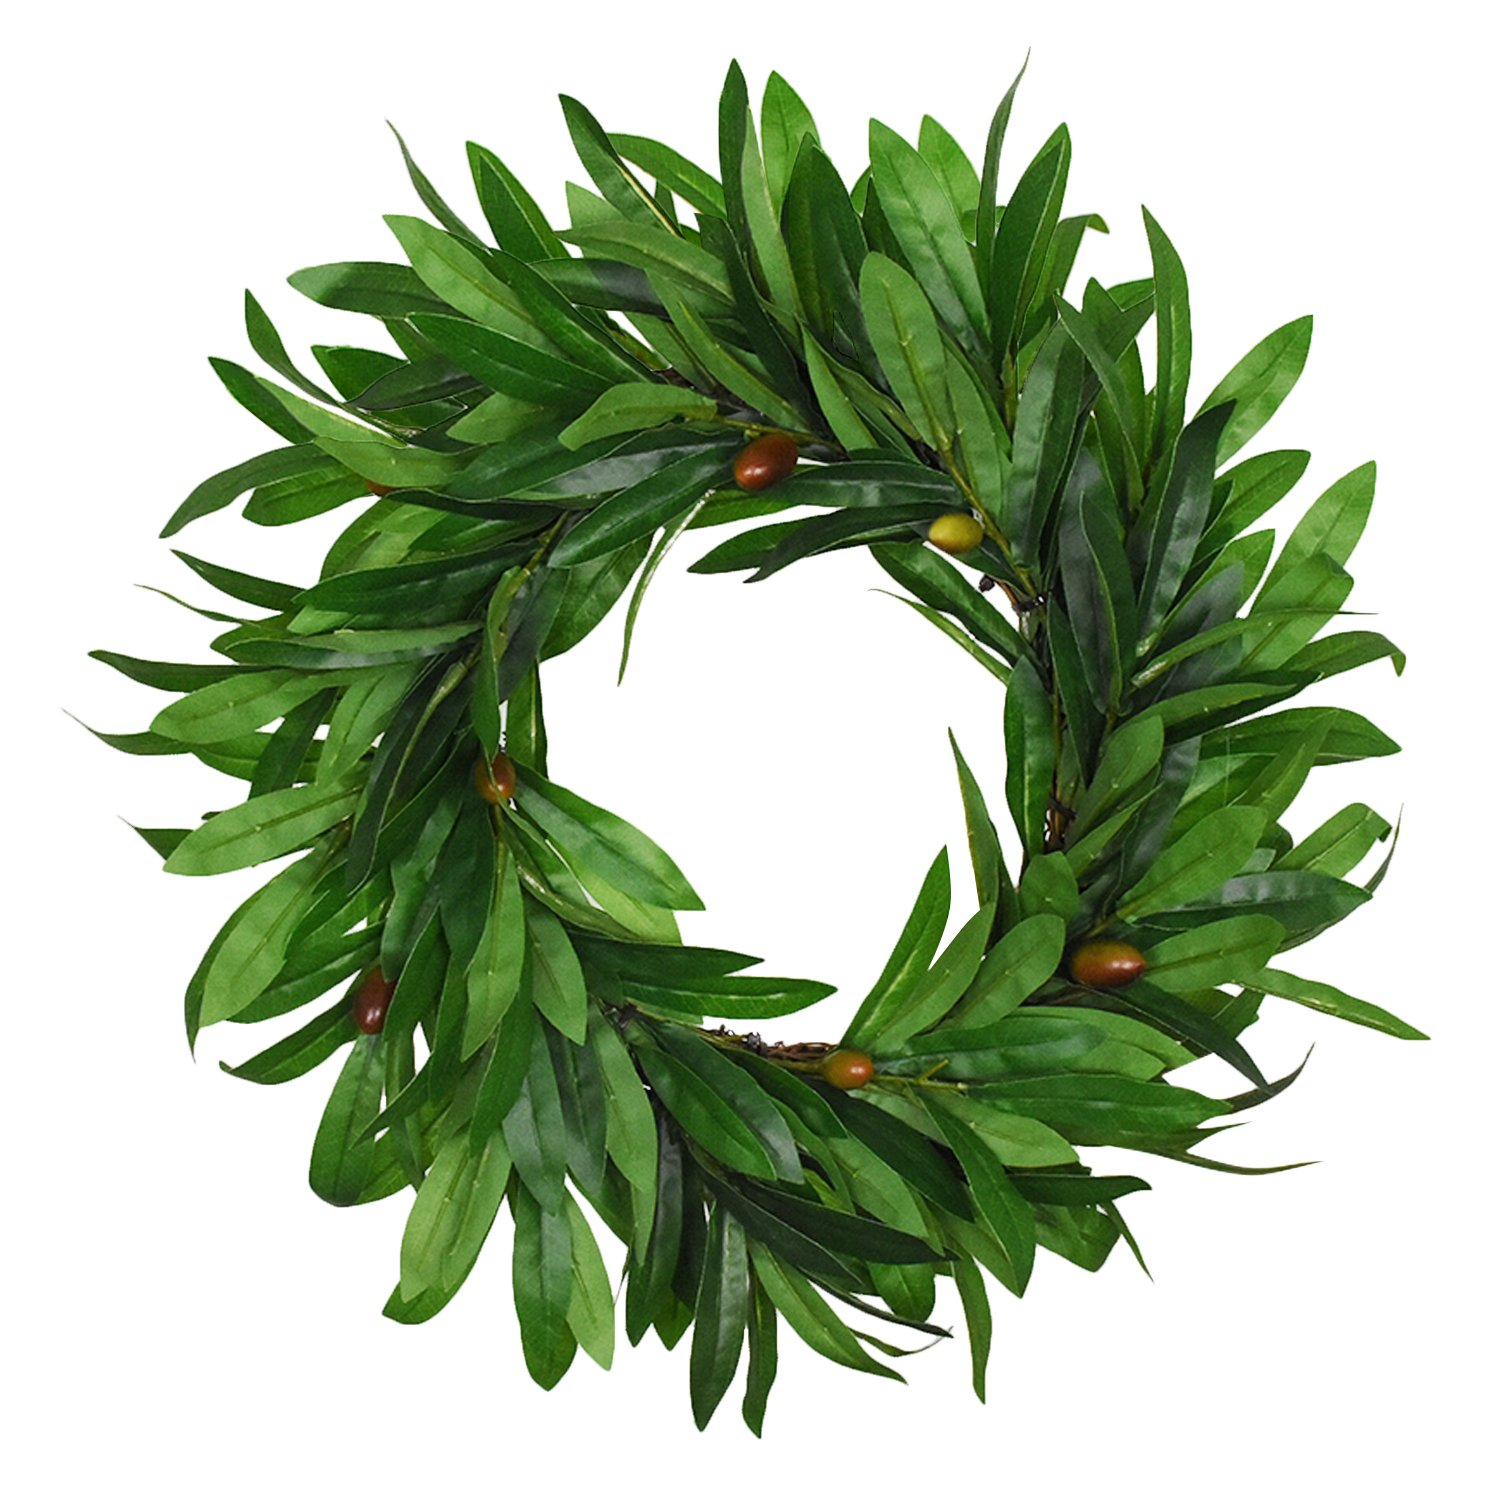 Sunm boutique Artificial Olive Wreath Natural Vines Green Leaves Front Door Indoor Outdoor Wall Wedding Home Decoration